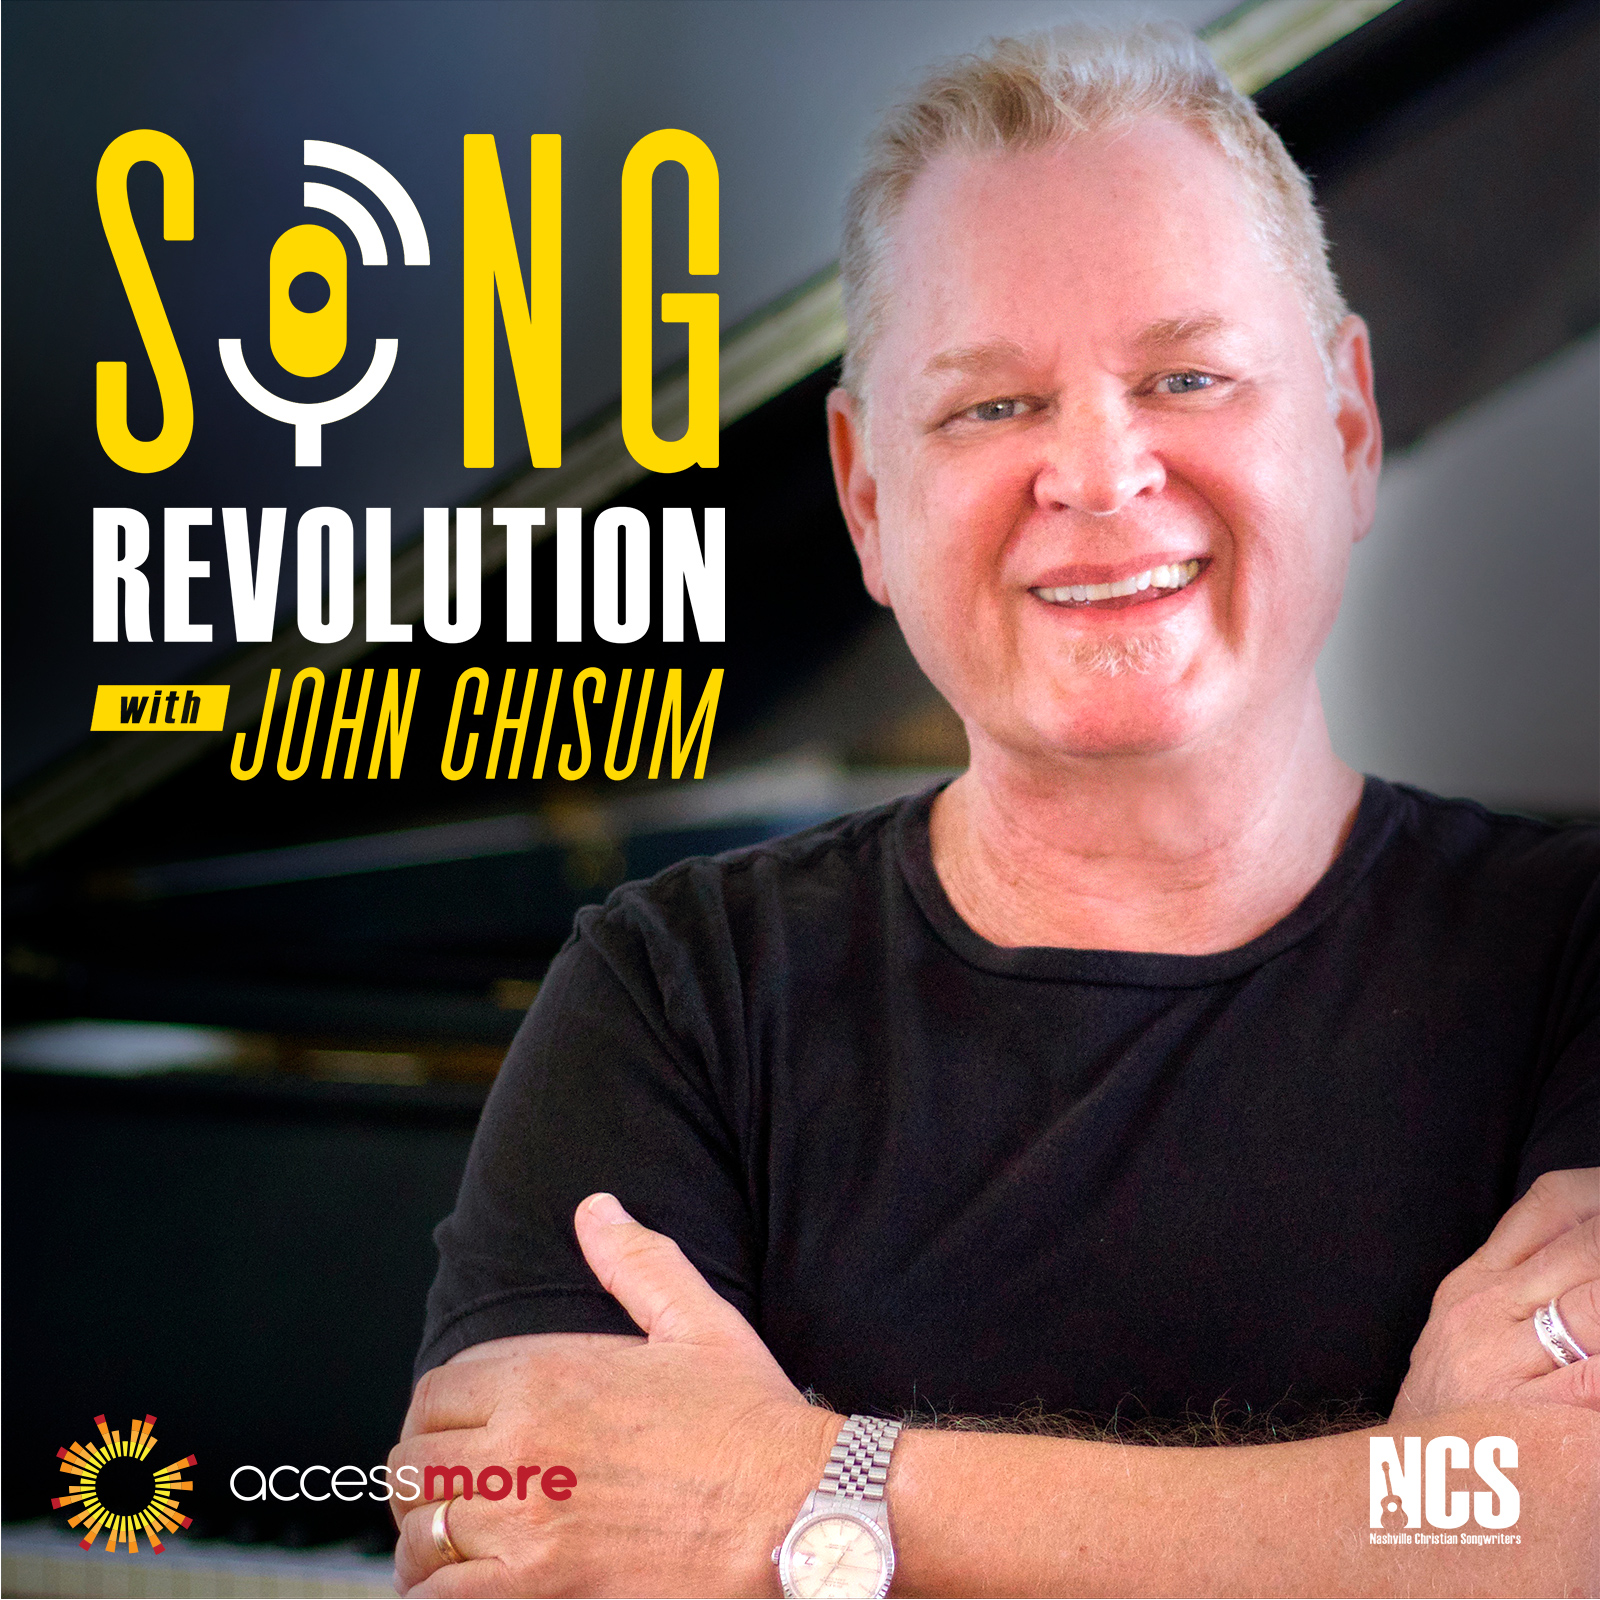 How To Become A Successful Songwriter With John Chisum